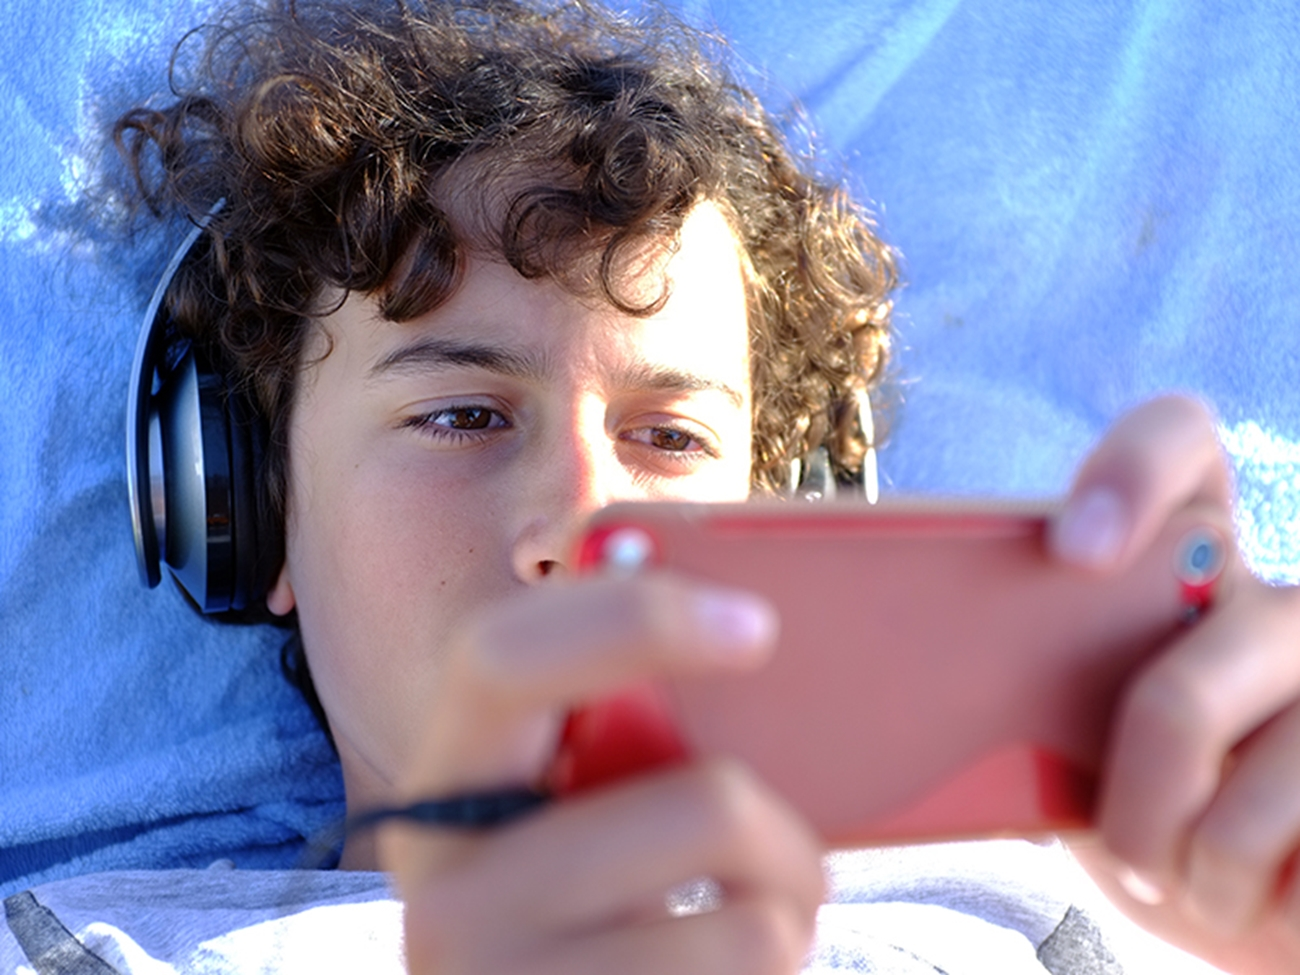 A teenage boy with brown, curly hair lies down watching his phone with big headphones on.